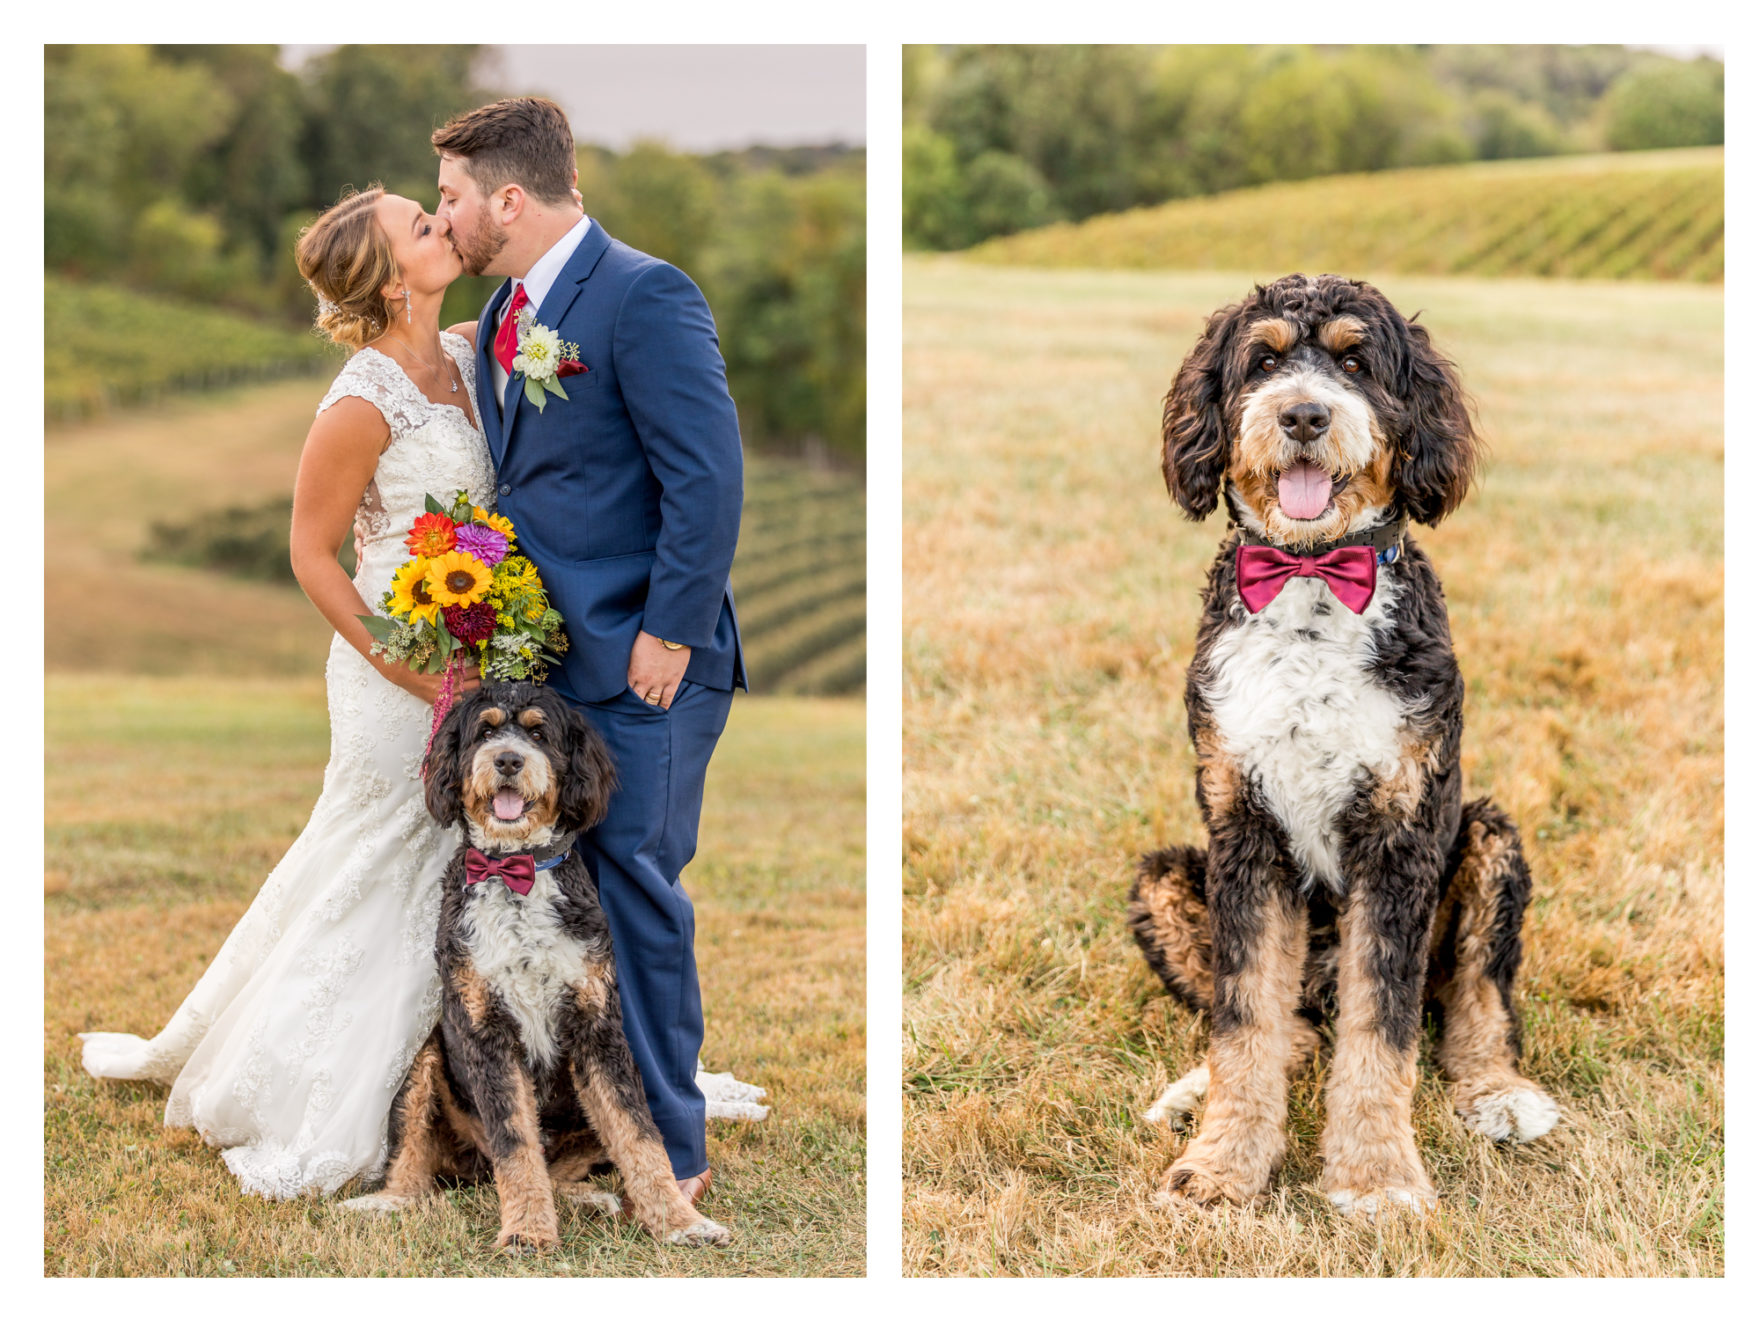 Linganore Winecellars wedding. Linganore winery wedding. winery wedding. fall wedding. frederick weddings. frederick wedding photographer. dog wedding. dog ring bearer. bernadoodle. barn wedding.